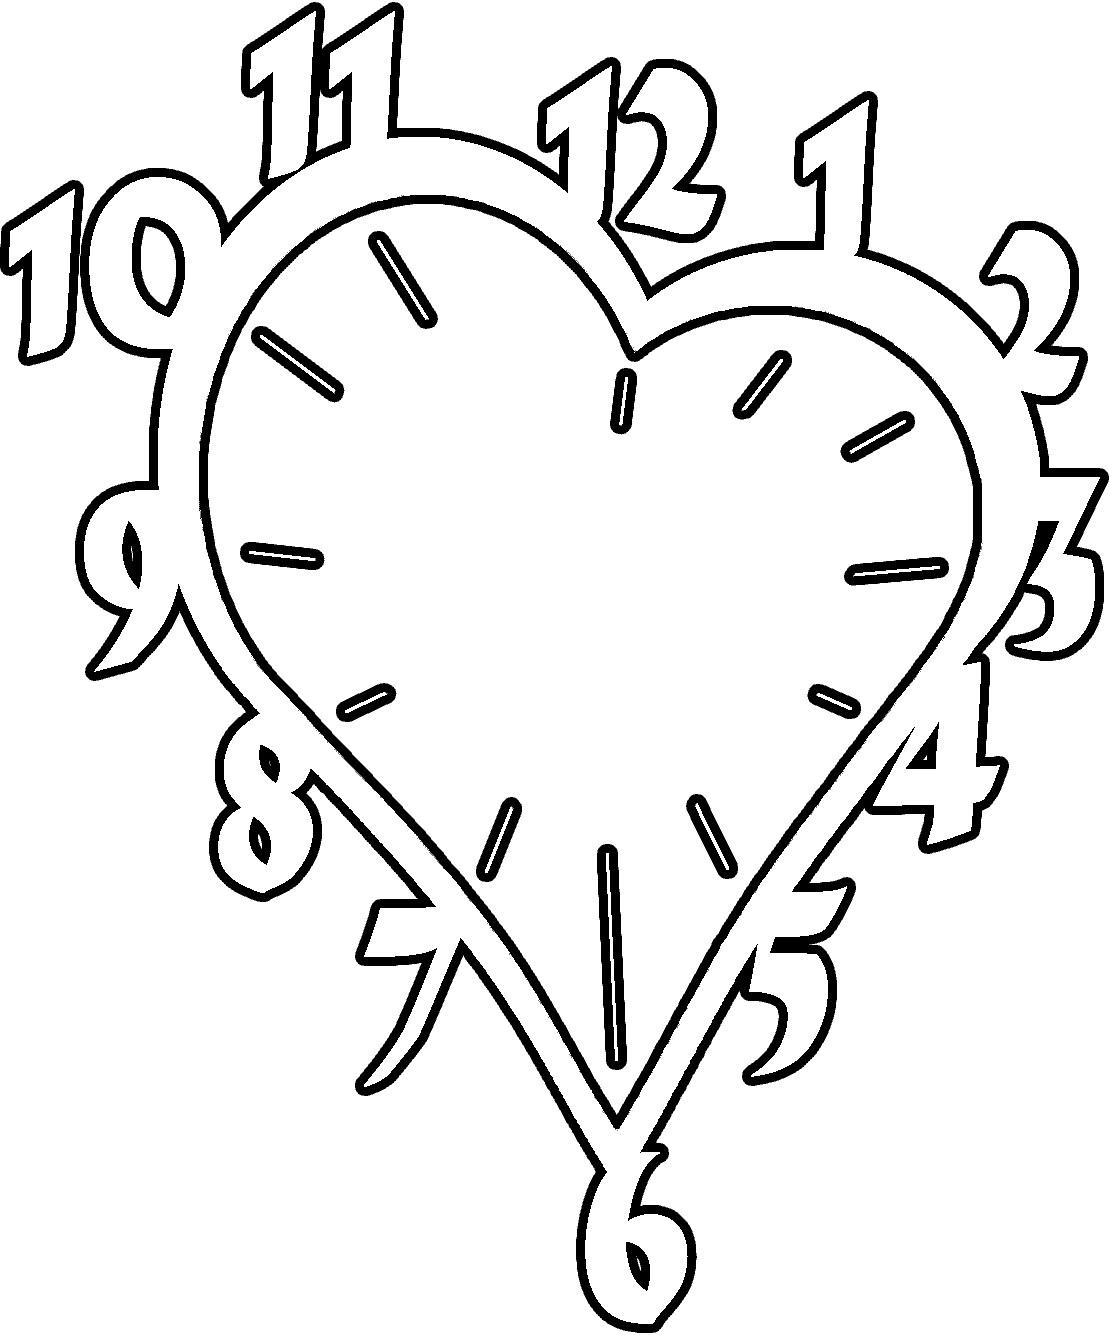 1109x1335 Free Printable Clock Coloring Pages For Kids